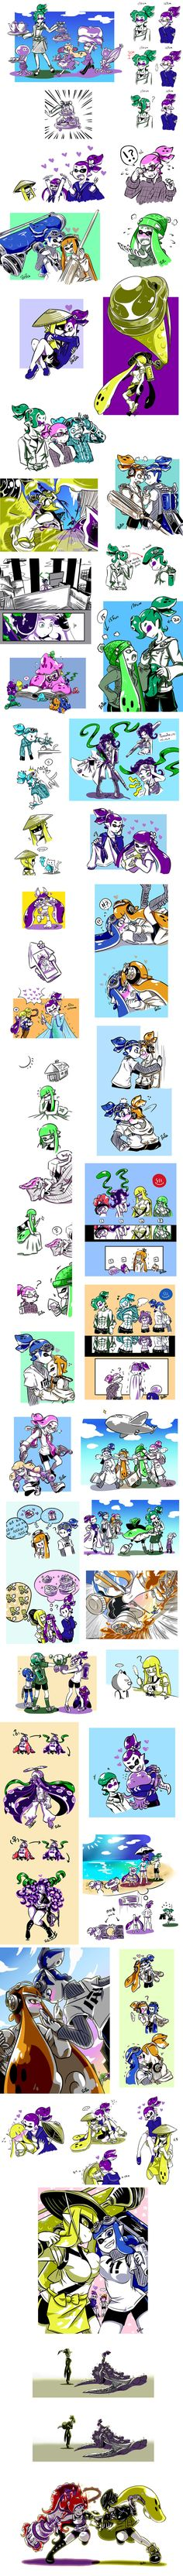 [splatoon] doodle on Tumblr and Twitter 3 by zzoza on DeviantArt